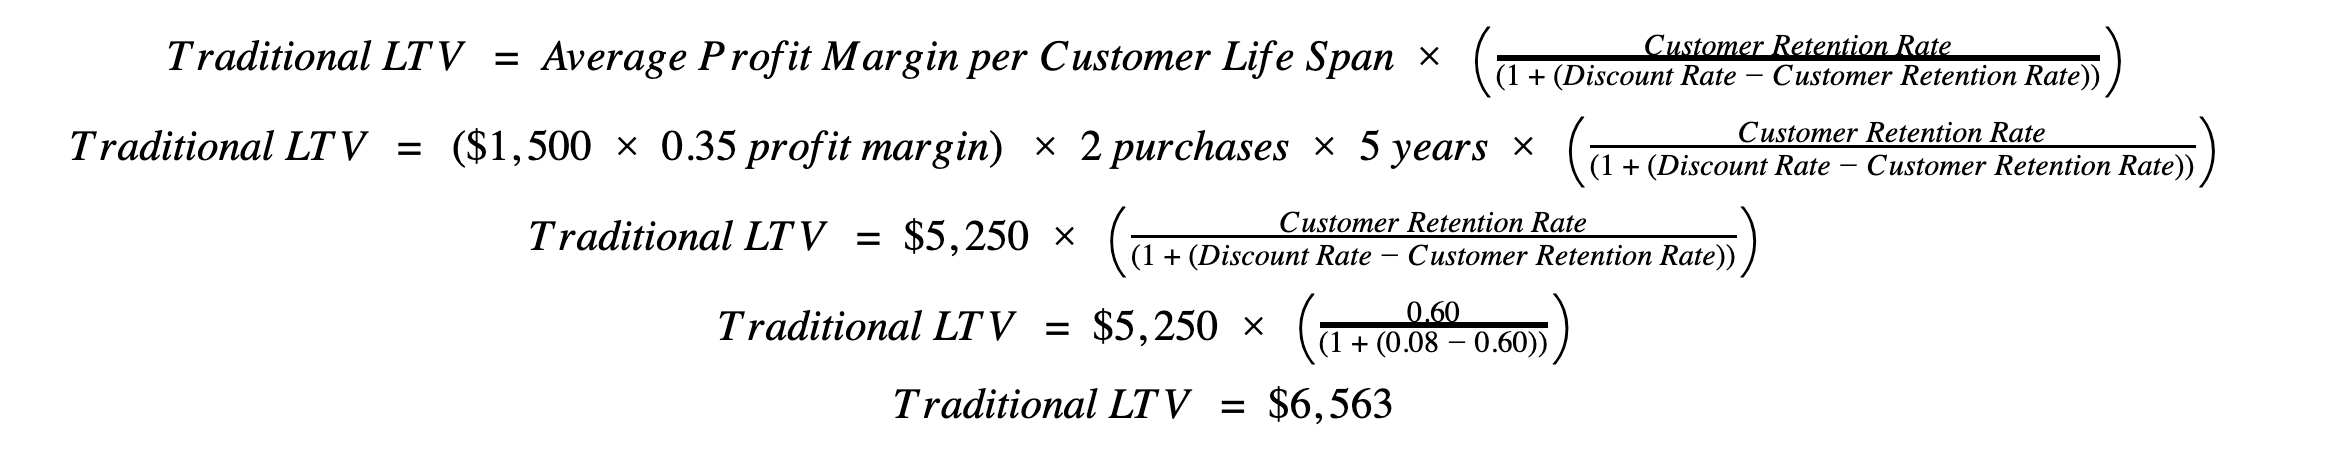 Traditional LTV Calculation Example